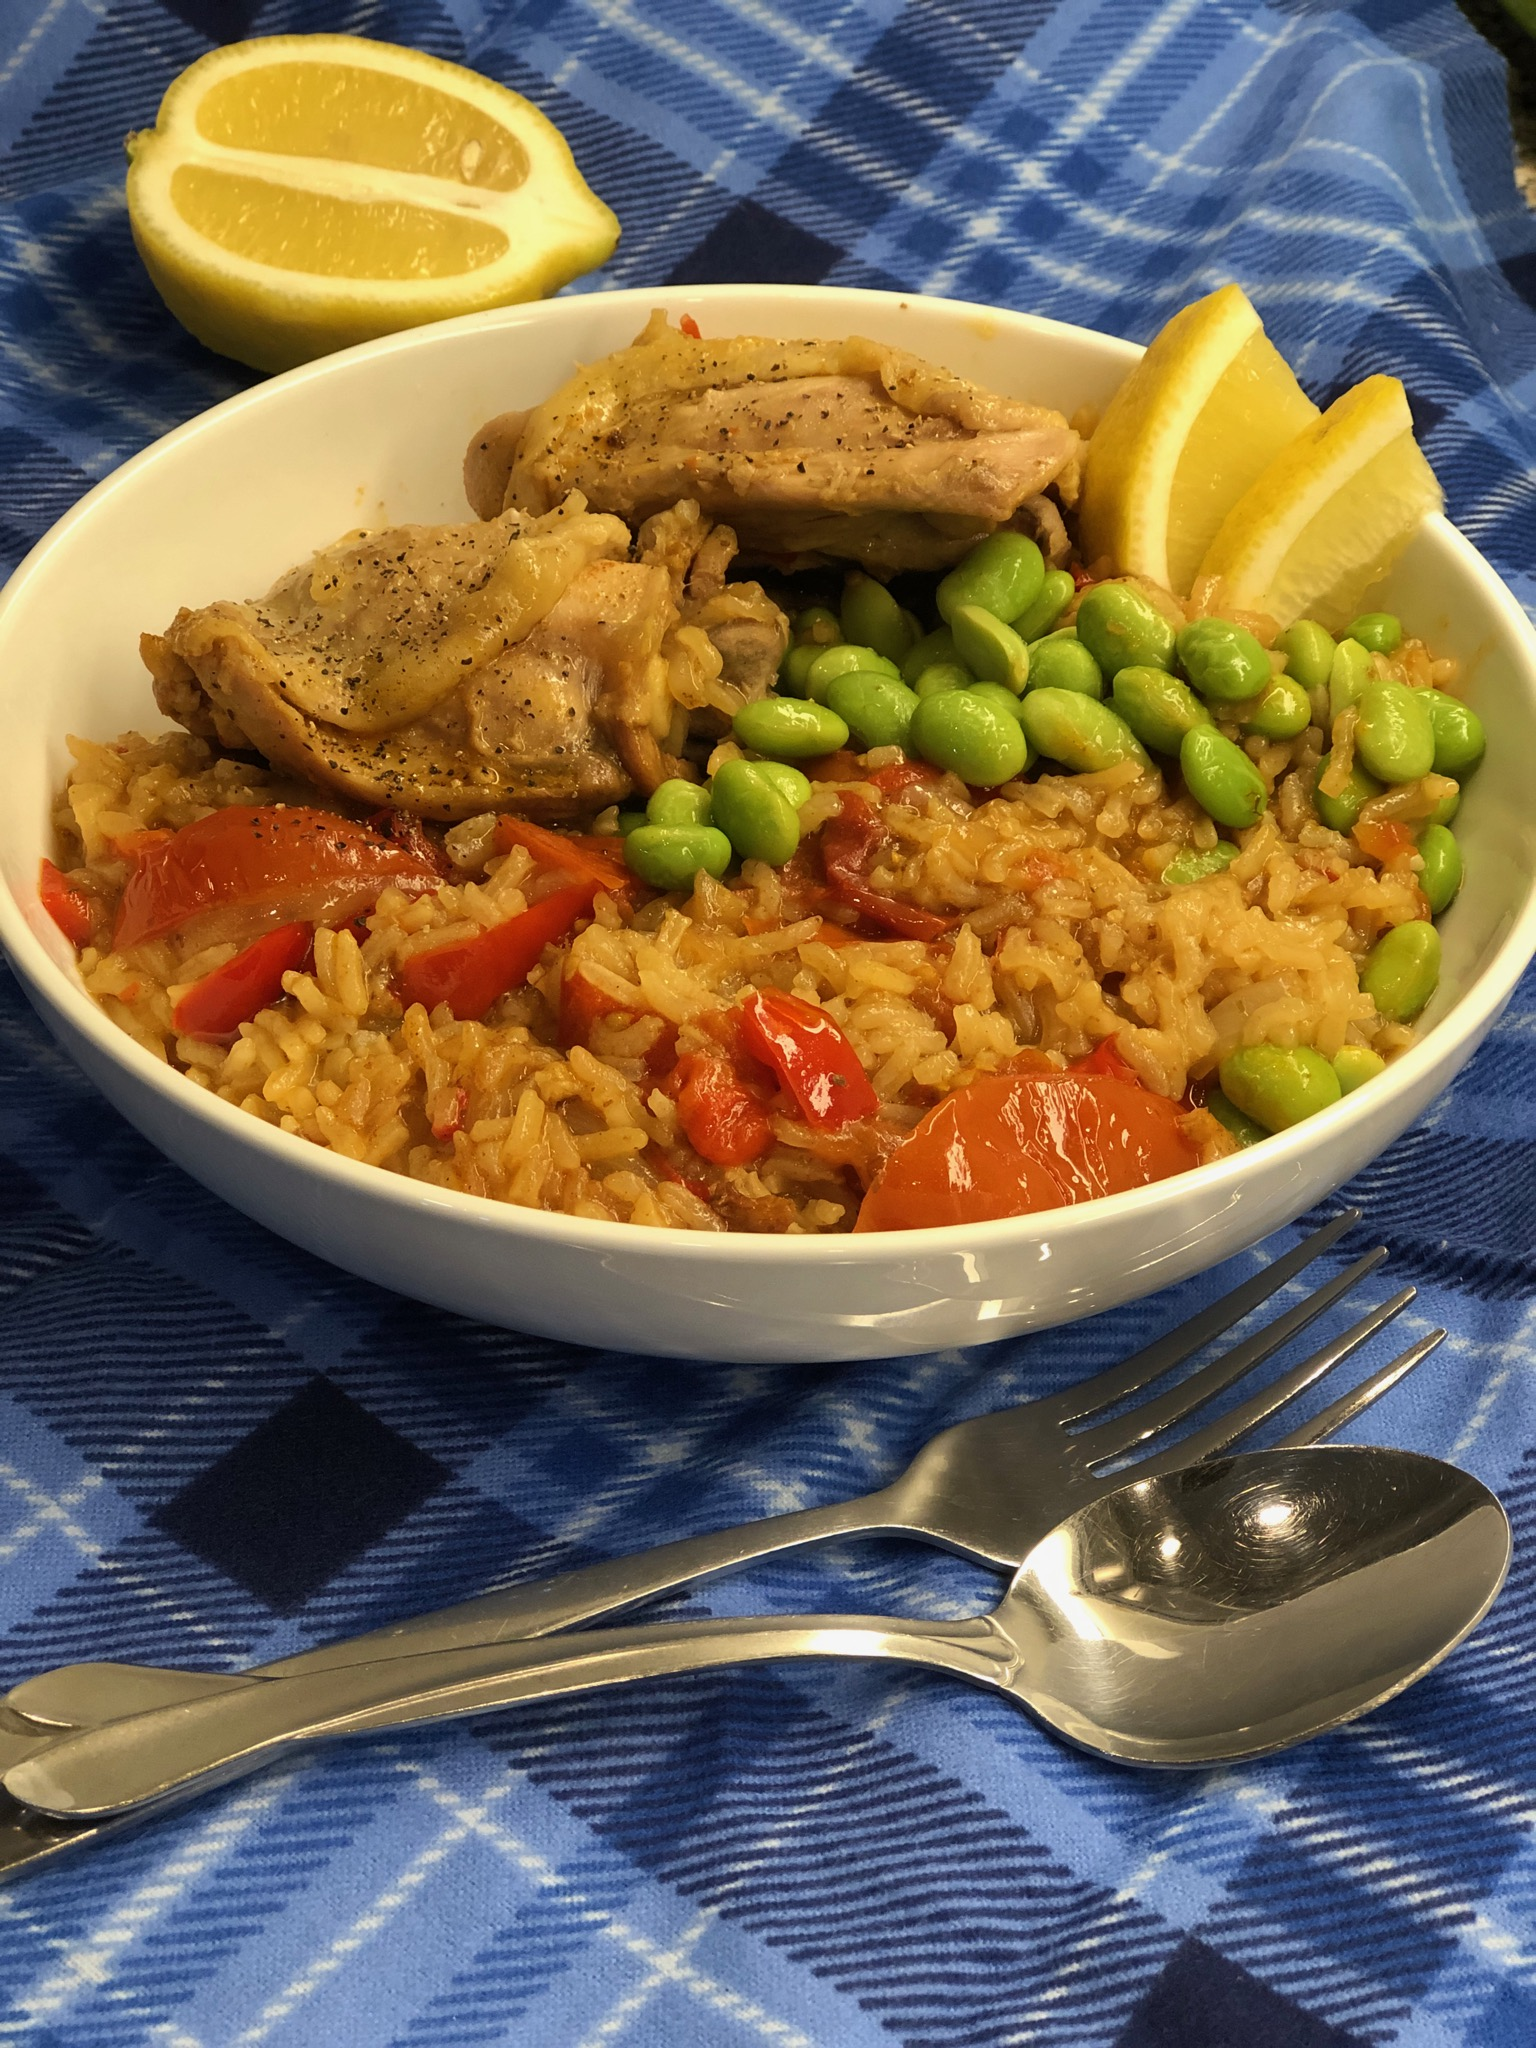 """This delicious arroz-con-pollo-esque dish is so easy to make with the Instant Pot,"" says Diana71. ""Colorful, appetizing, and nourishing, this meal comes together in a flash and is chock full of flavor! Squeeze lime or lemon wedges over if you like!"""